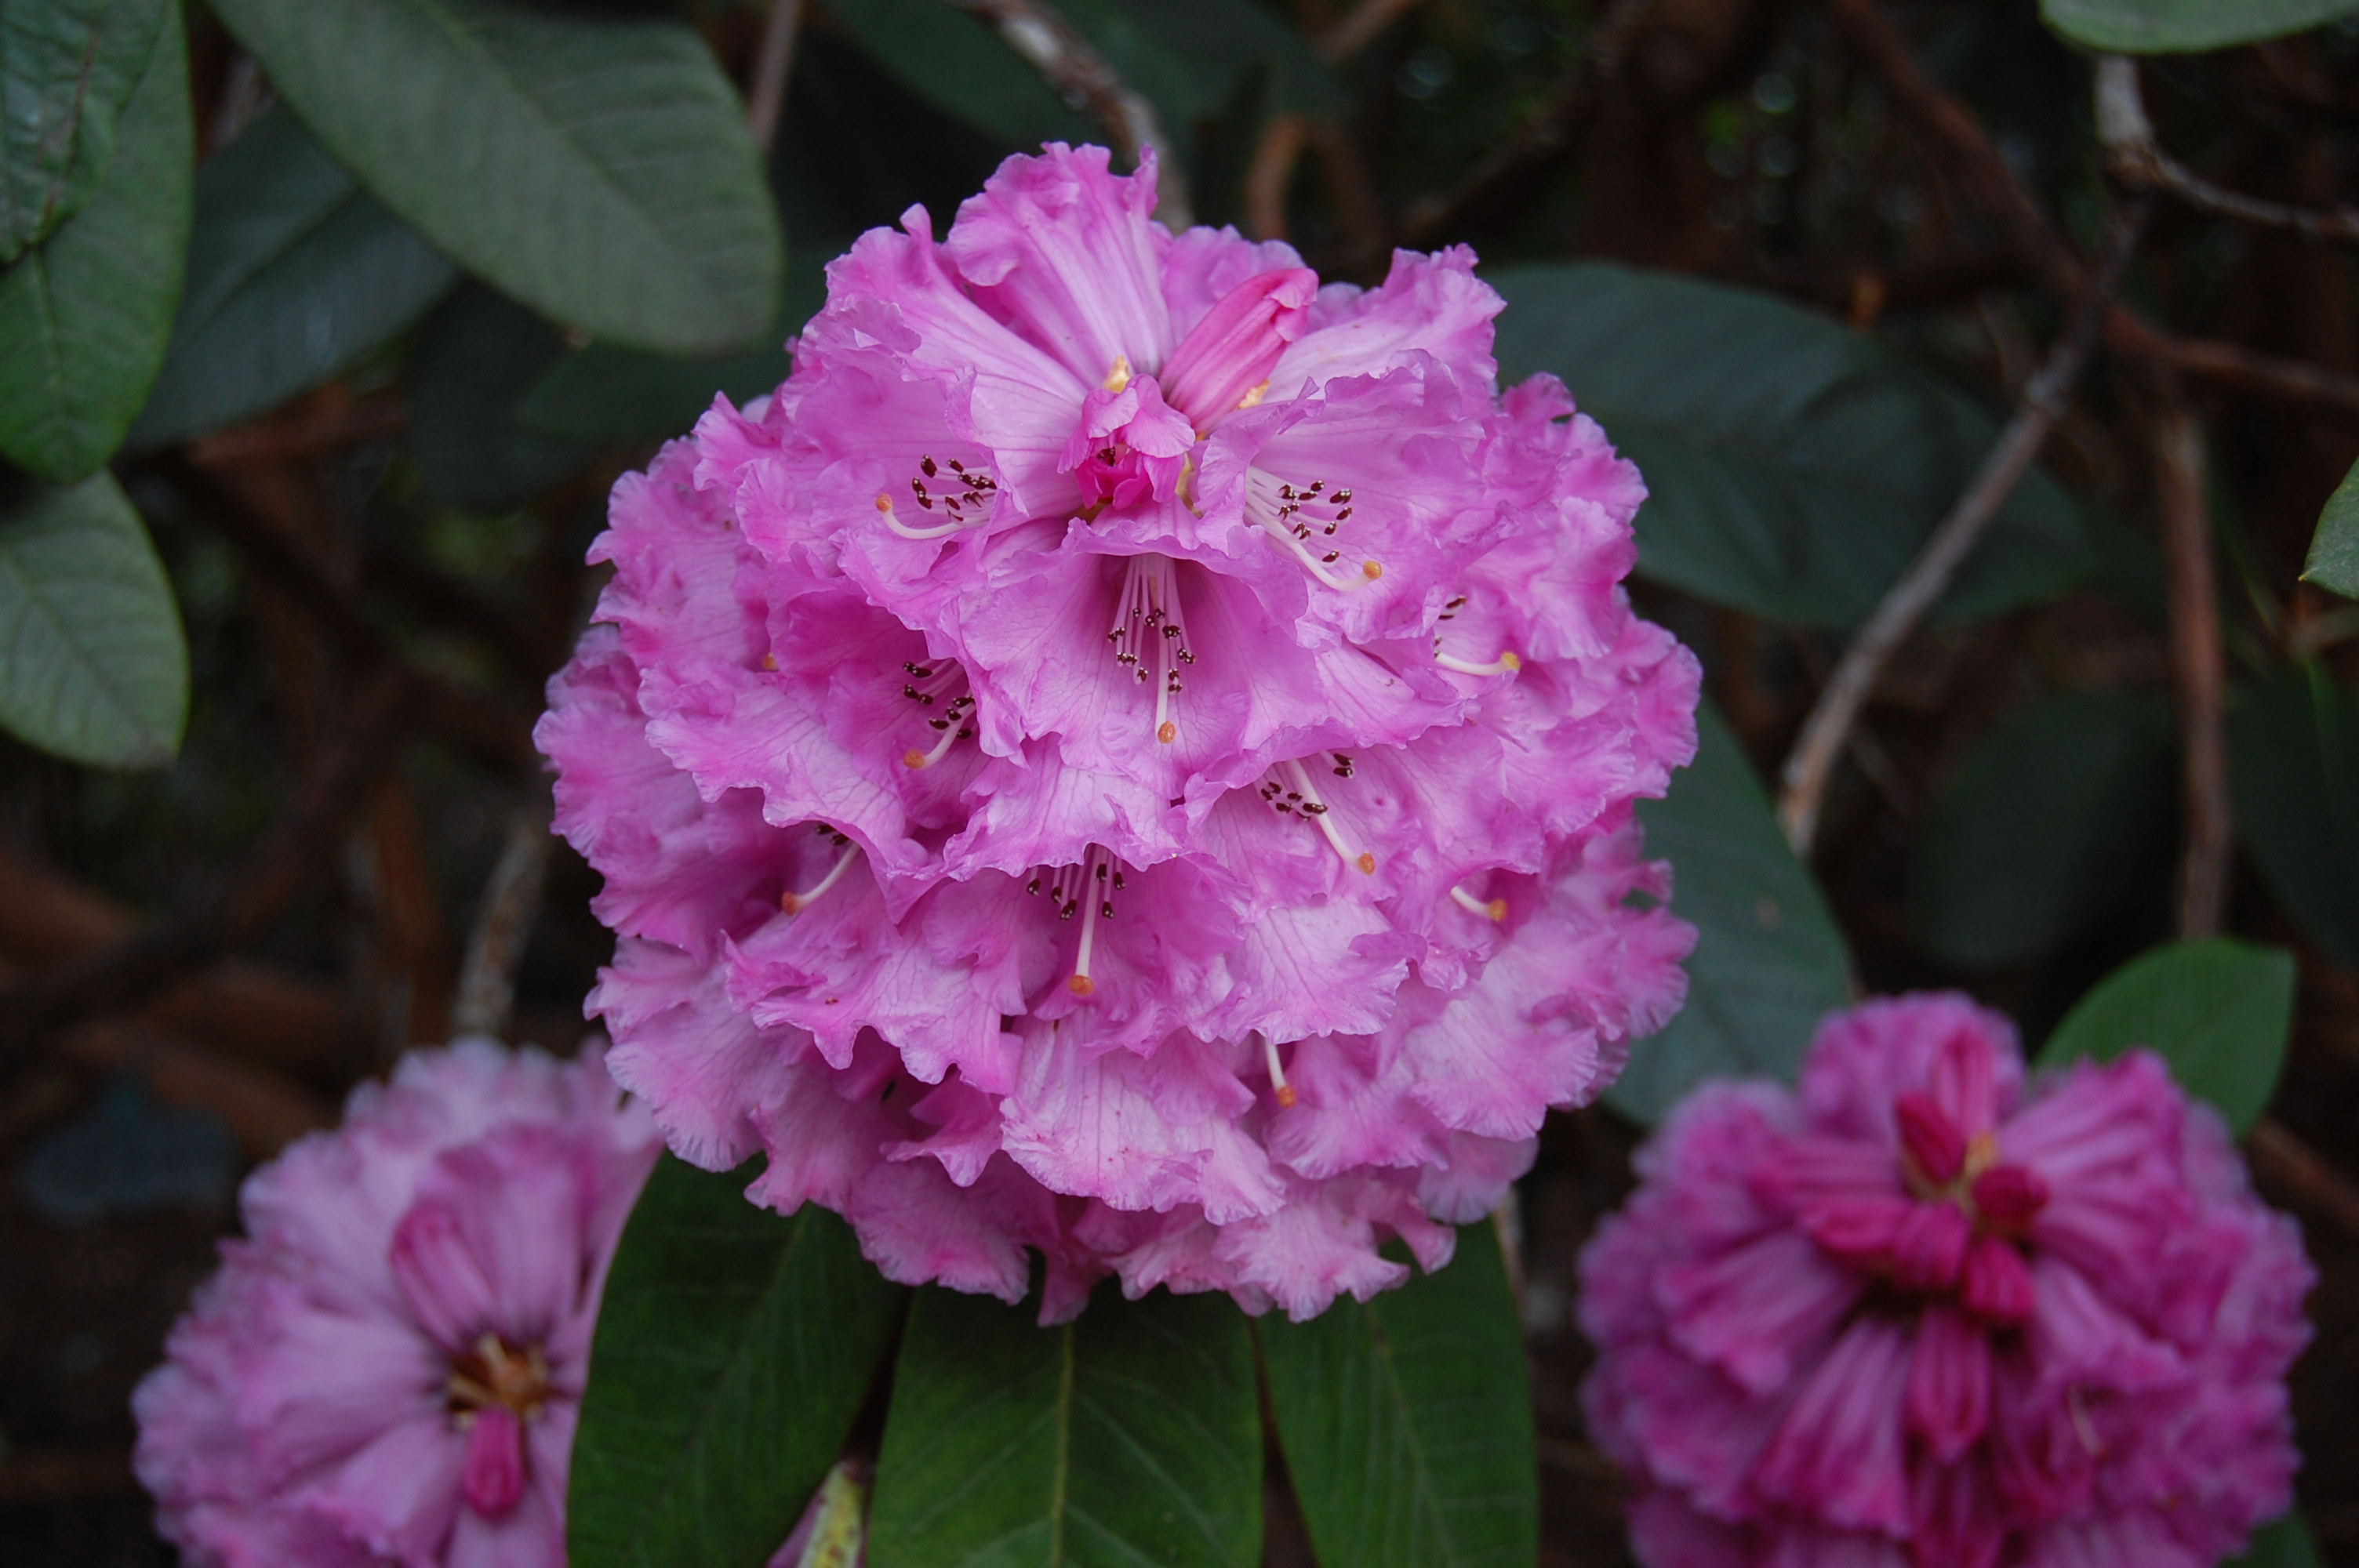 Rhododendron 'Colonel Rogers'. Yes that's right, COLONEL Rogers. A military chap. One wonders what sort of a fellow he was to have this named after him. I think my mother used to have a bathing cap a bit like this.